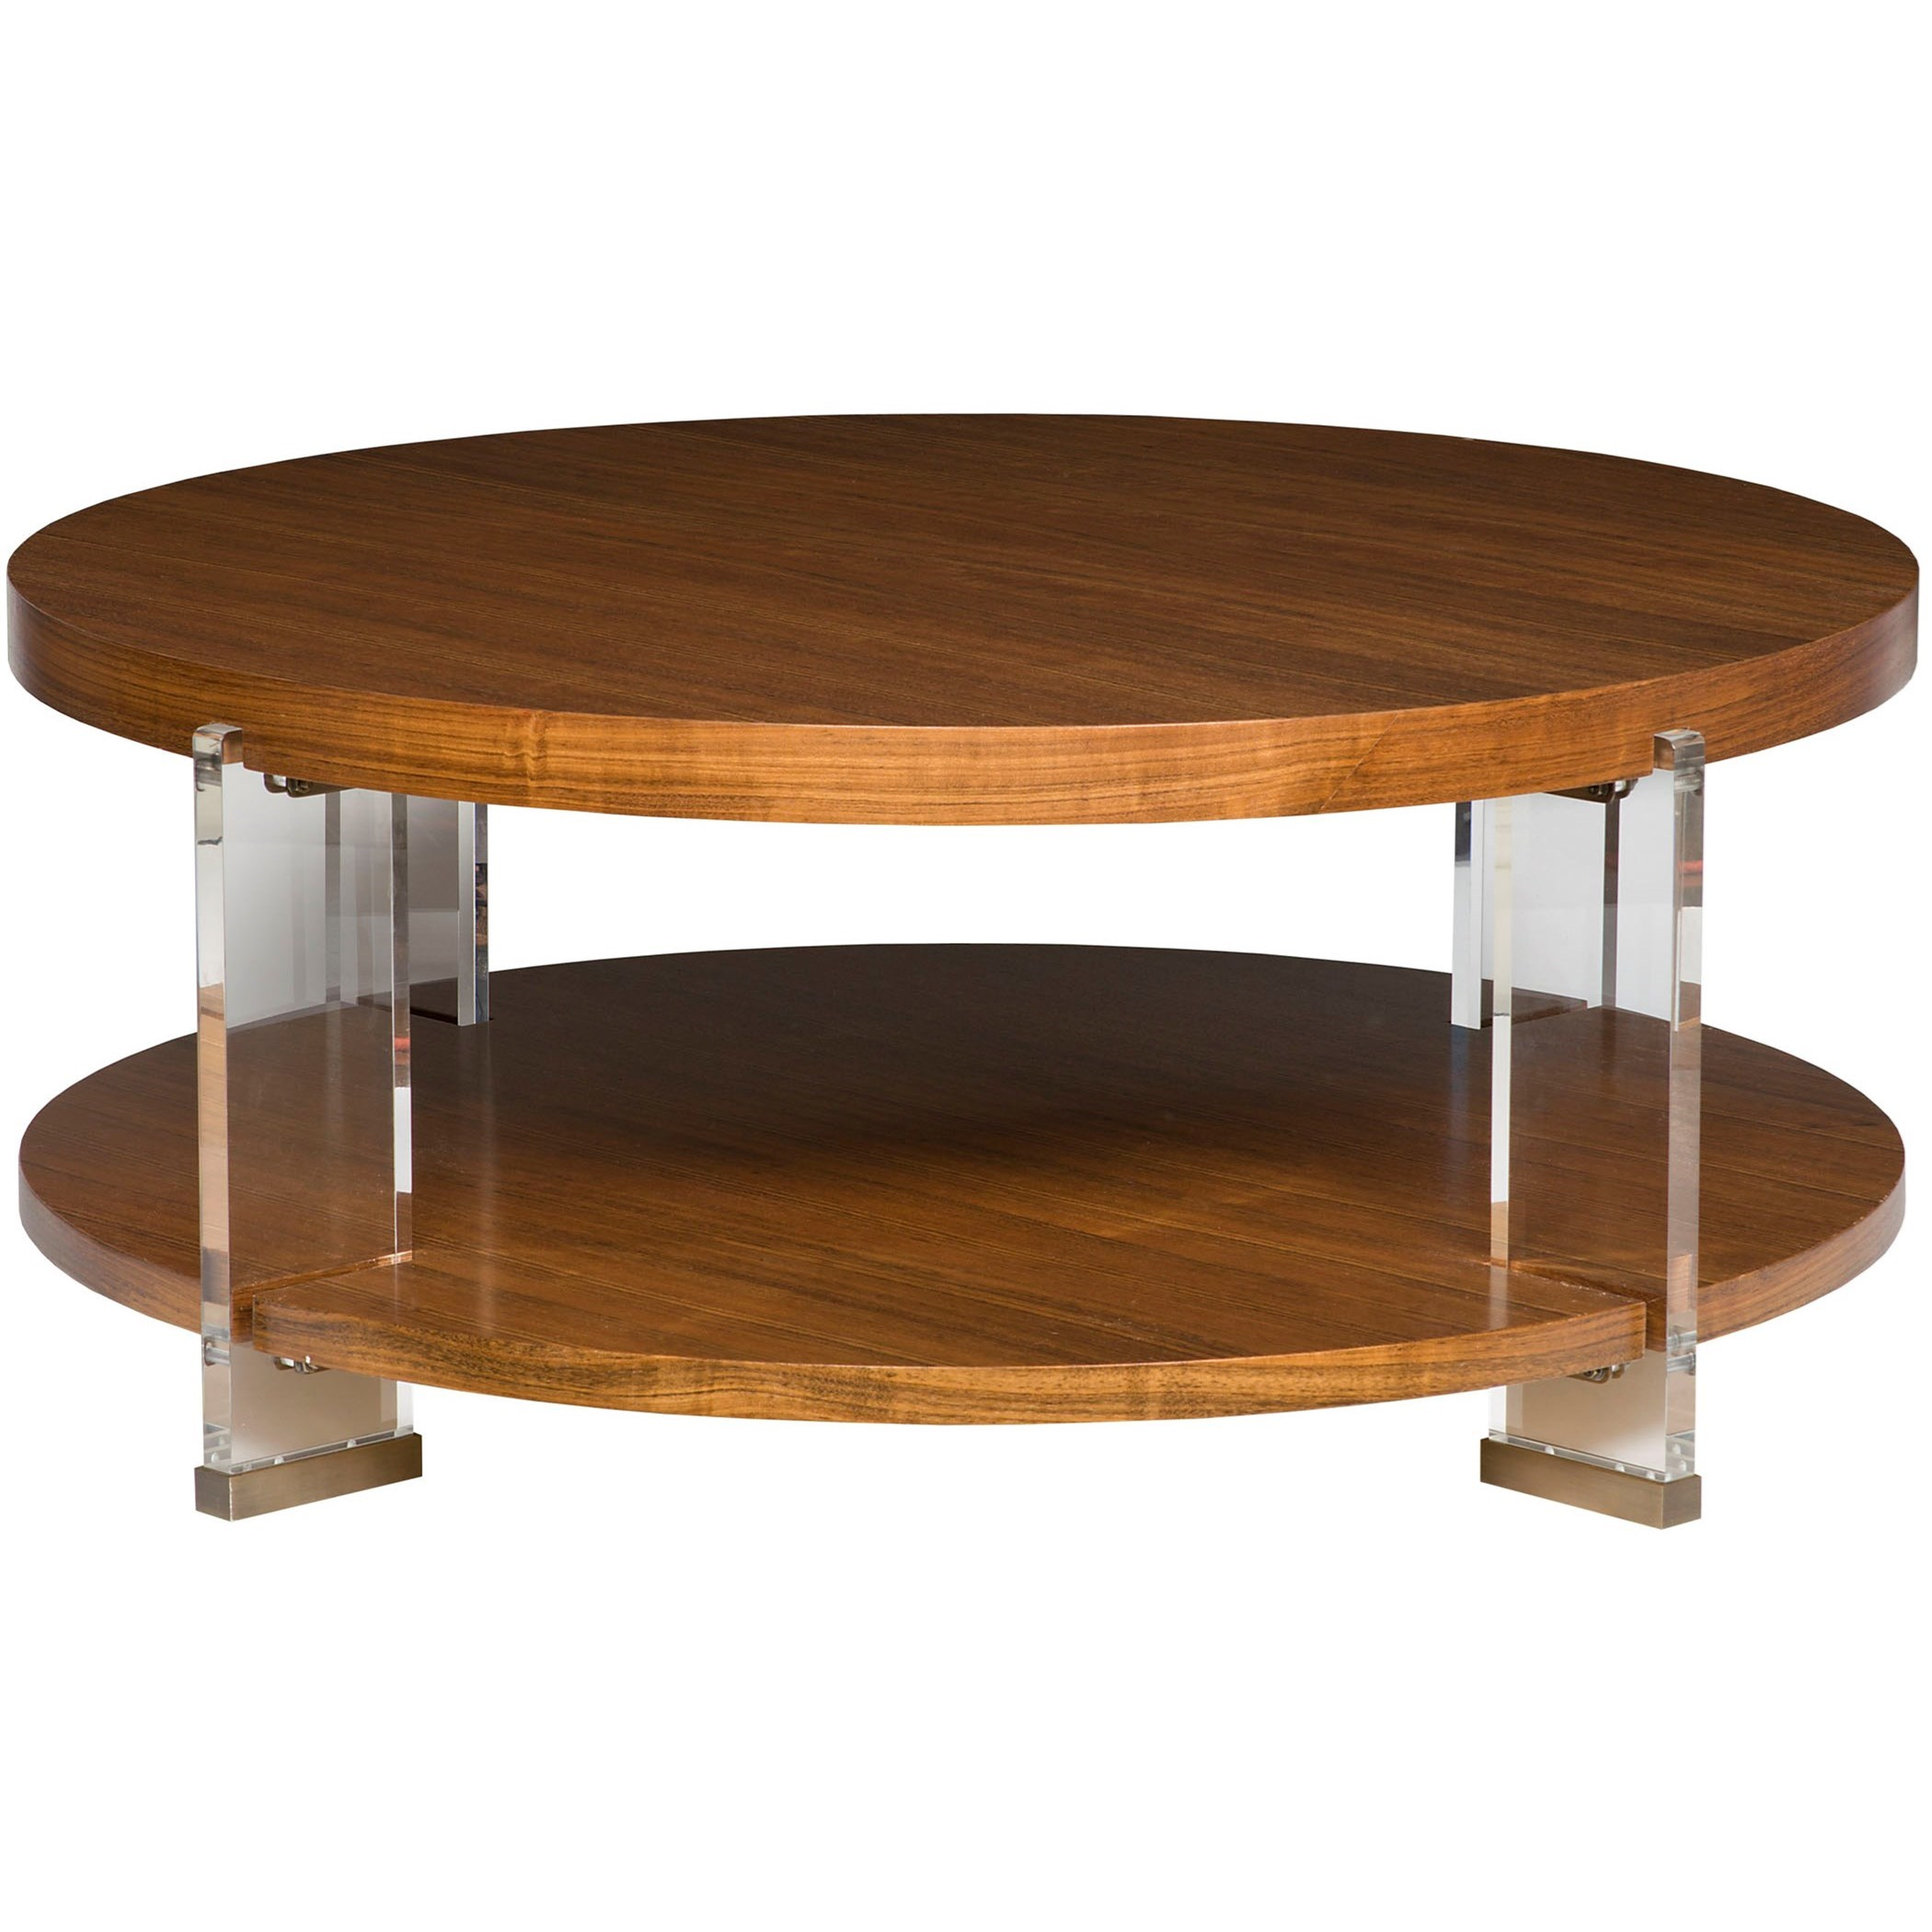 Dell Rey Round Cocktail Table